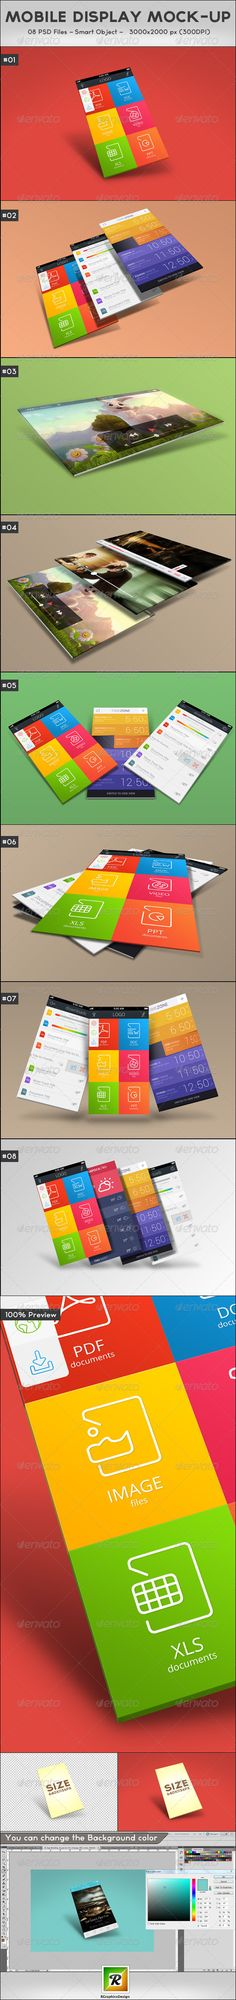 Mobile Display MockUp — Photoshop PSD #webpage #mresentation • Available here → https://graphicriver.net/item/mobile-display-mockup/5545991?ref=pxcr